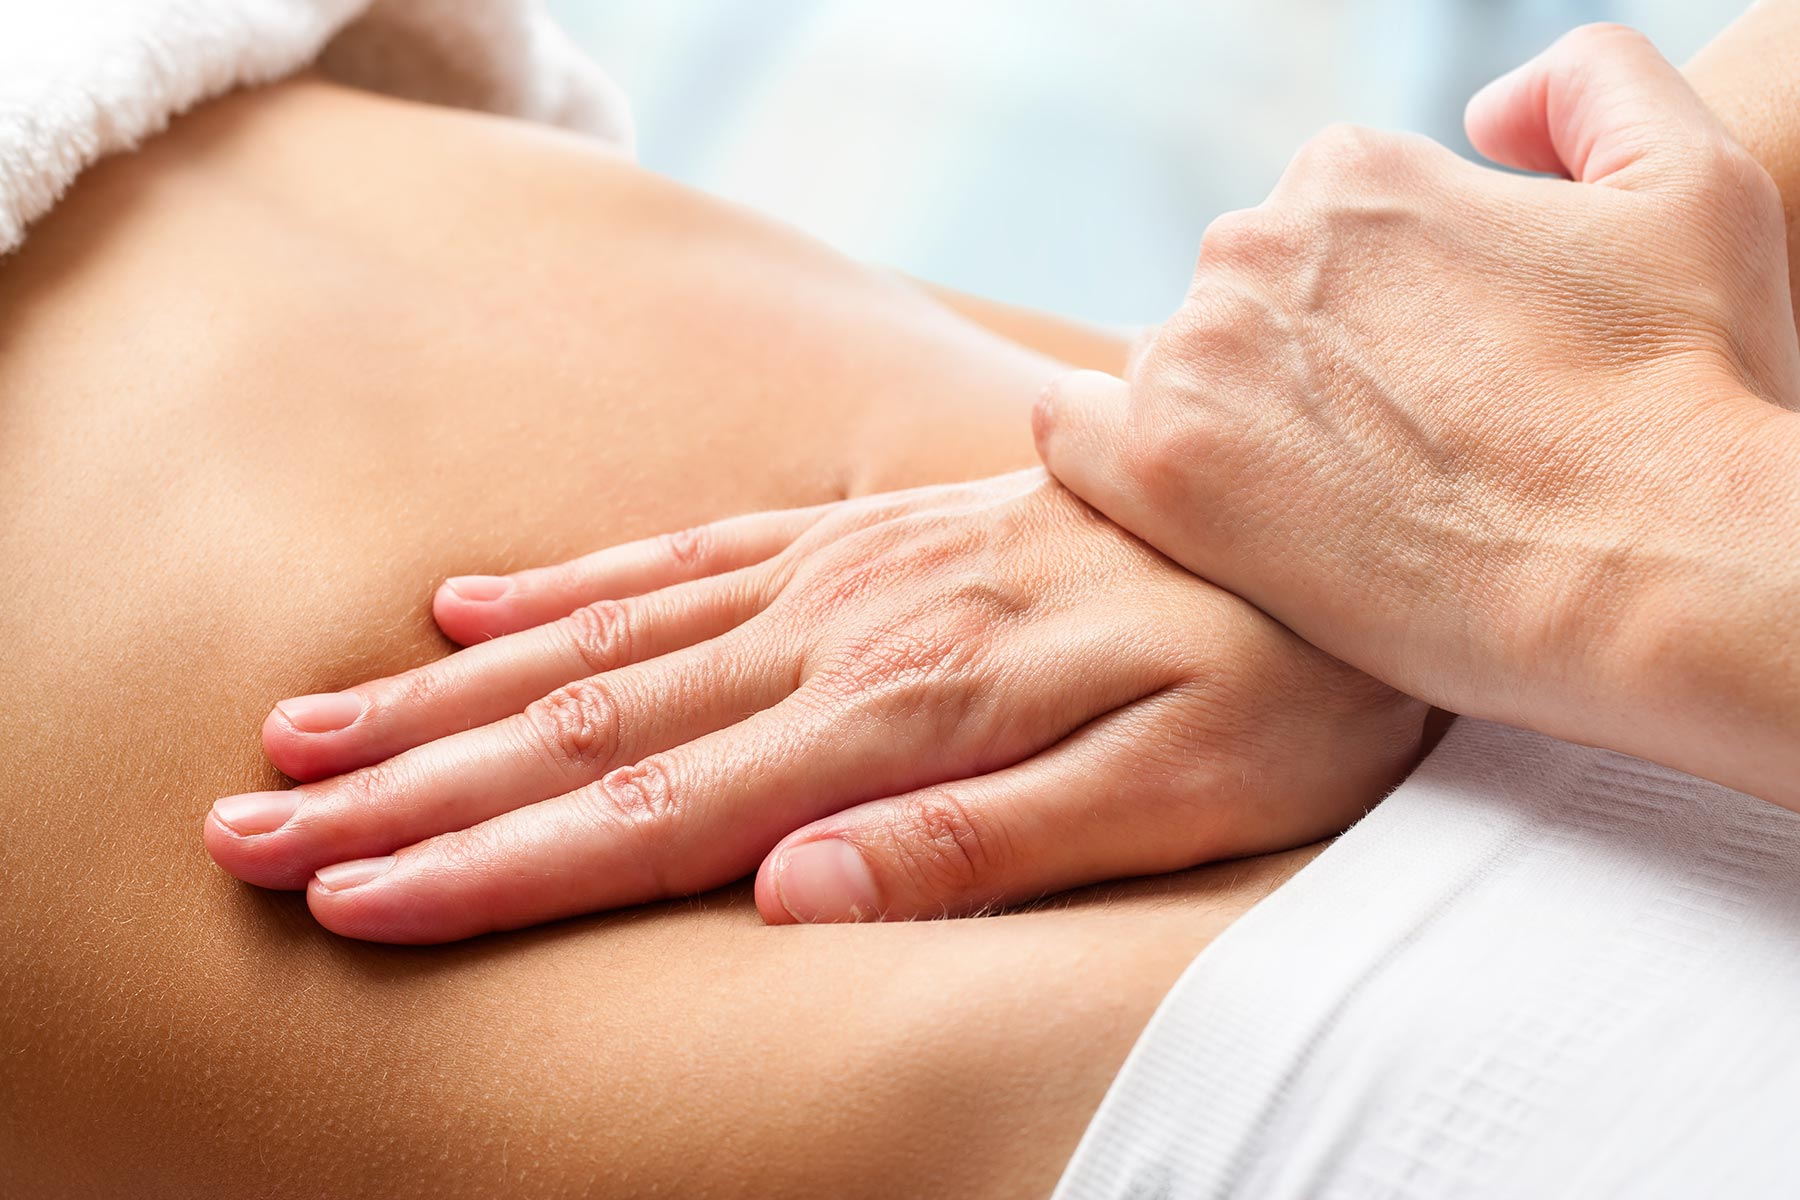 Chiropractic massage on table with towel